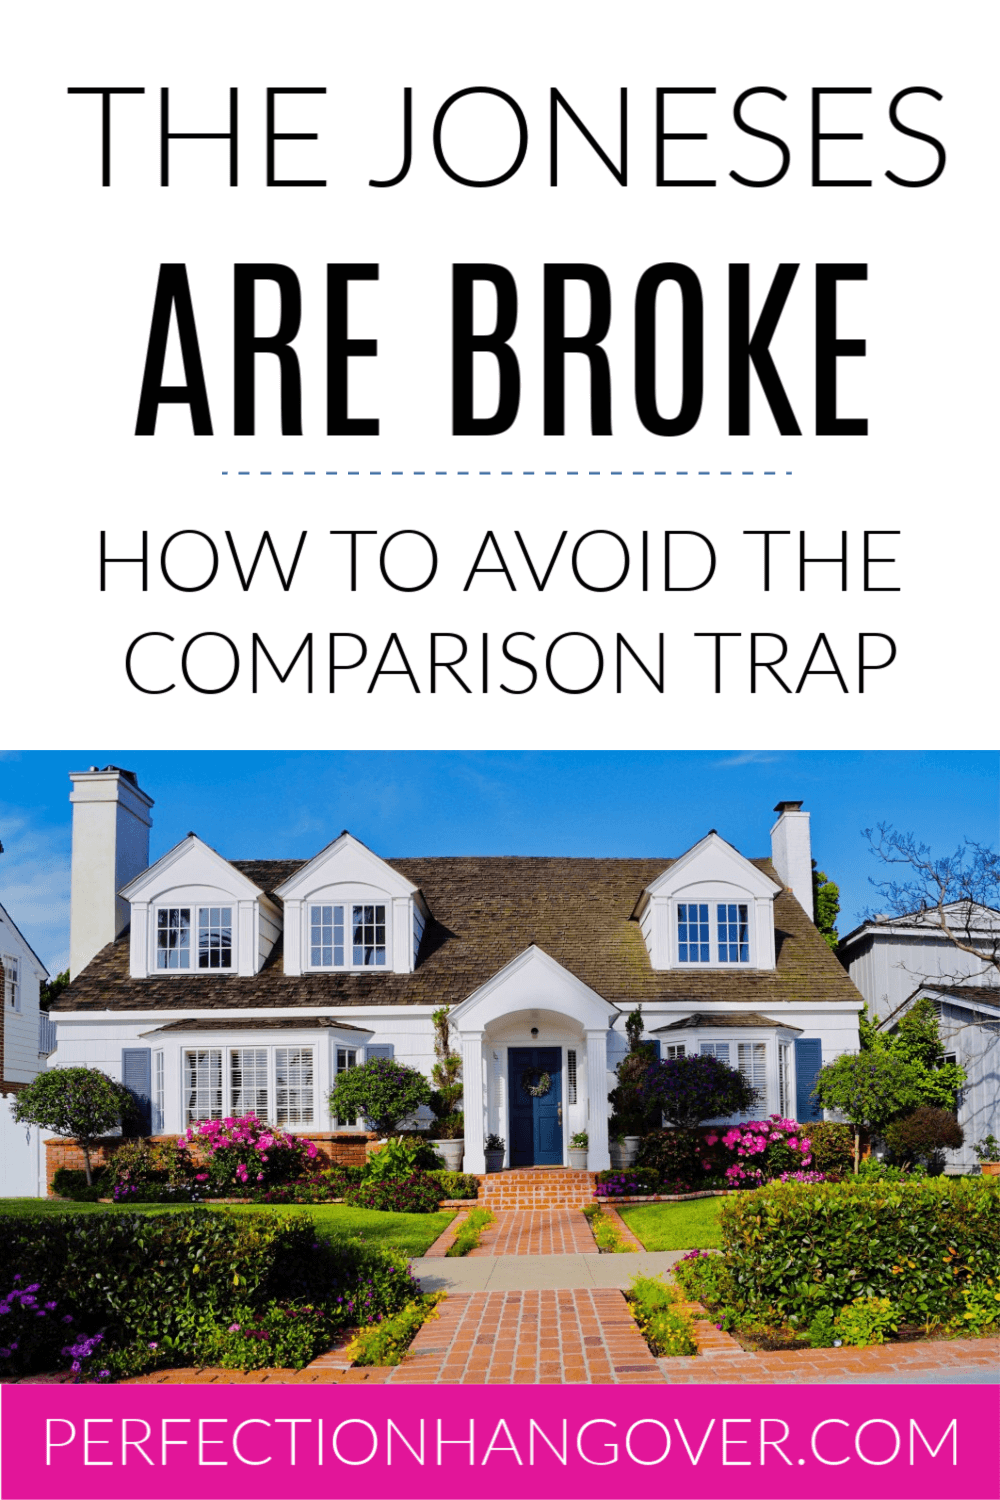 The Joneses Are Broke - And Other Things I Learned from Dave Ramsey